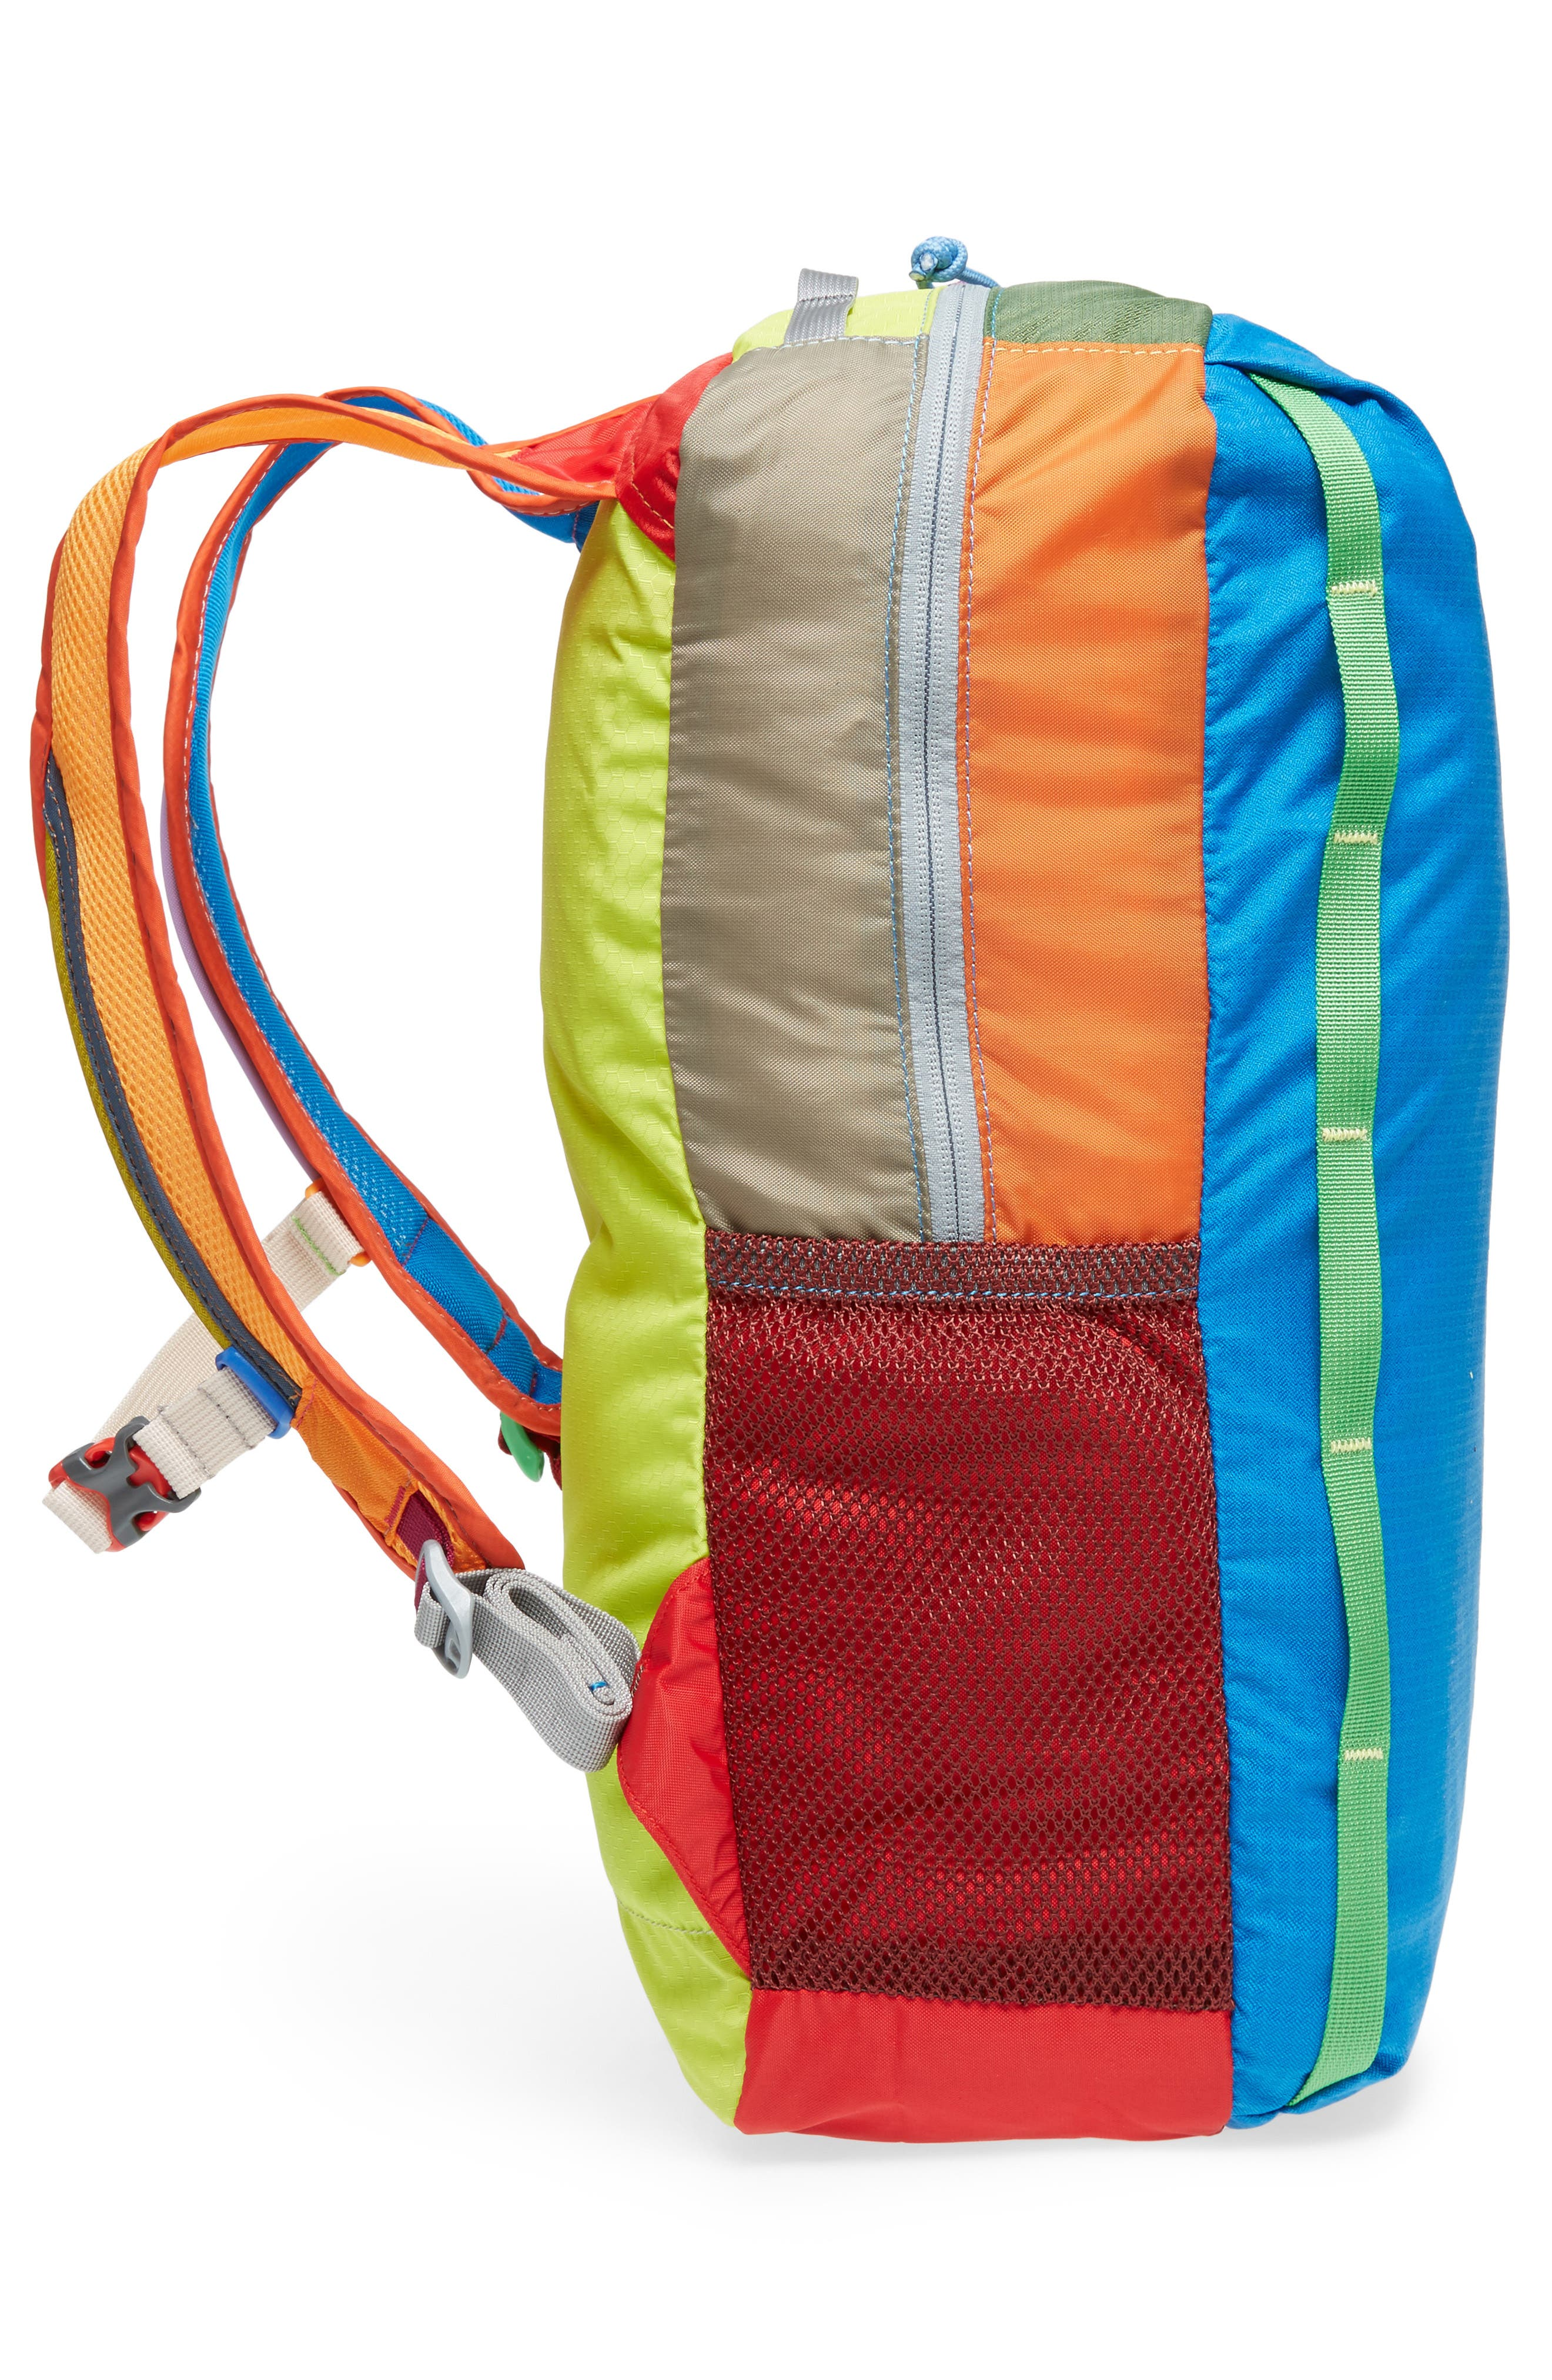 Batac Del Día One of a Kind Ripstop Nylon Daypack,                             Alternate thumbnail 5, color,                             Assorted